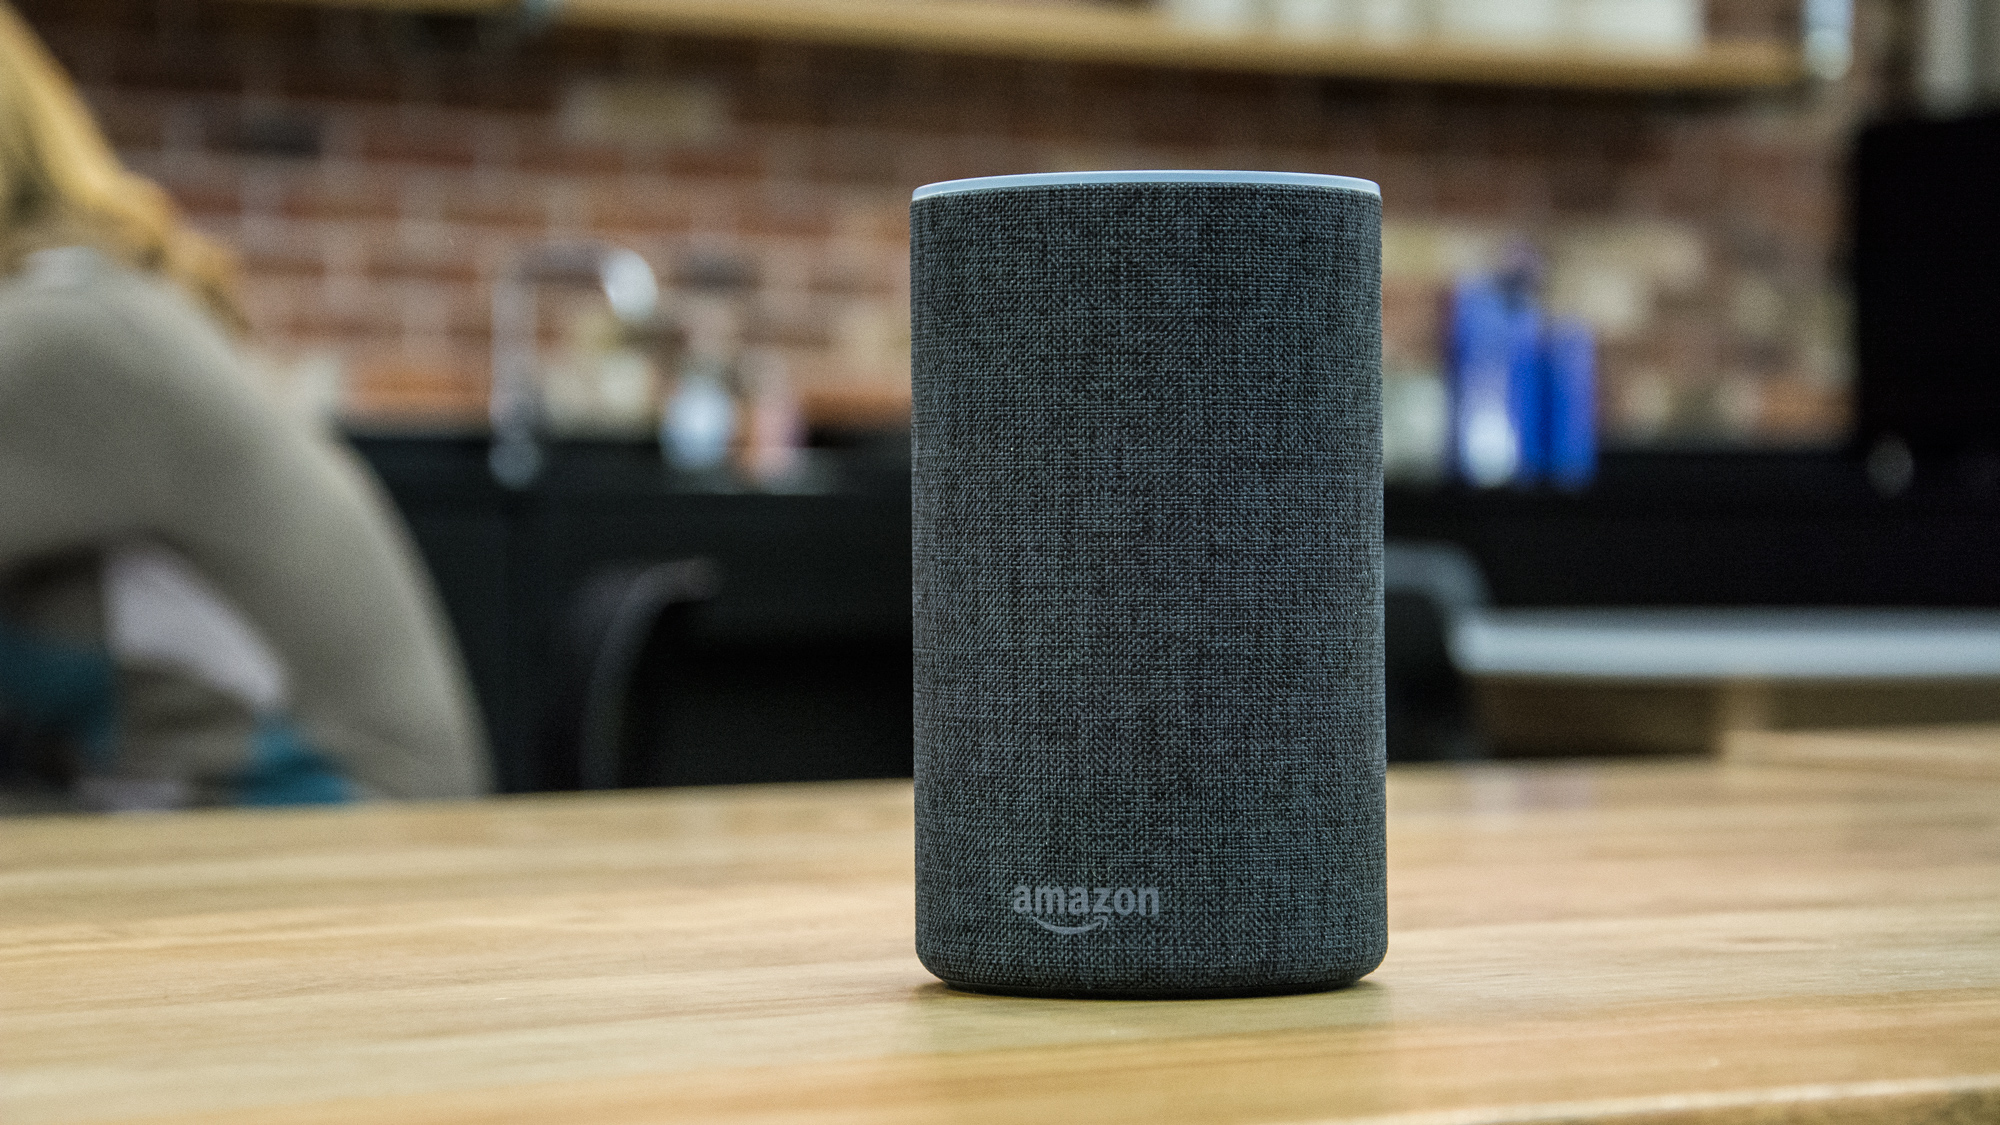 Alexa, Alexa is freaking people out with its creepy chuckle, Gadget Pilipinas